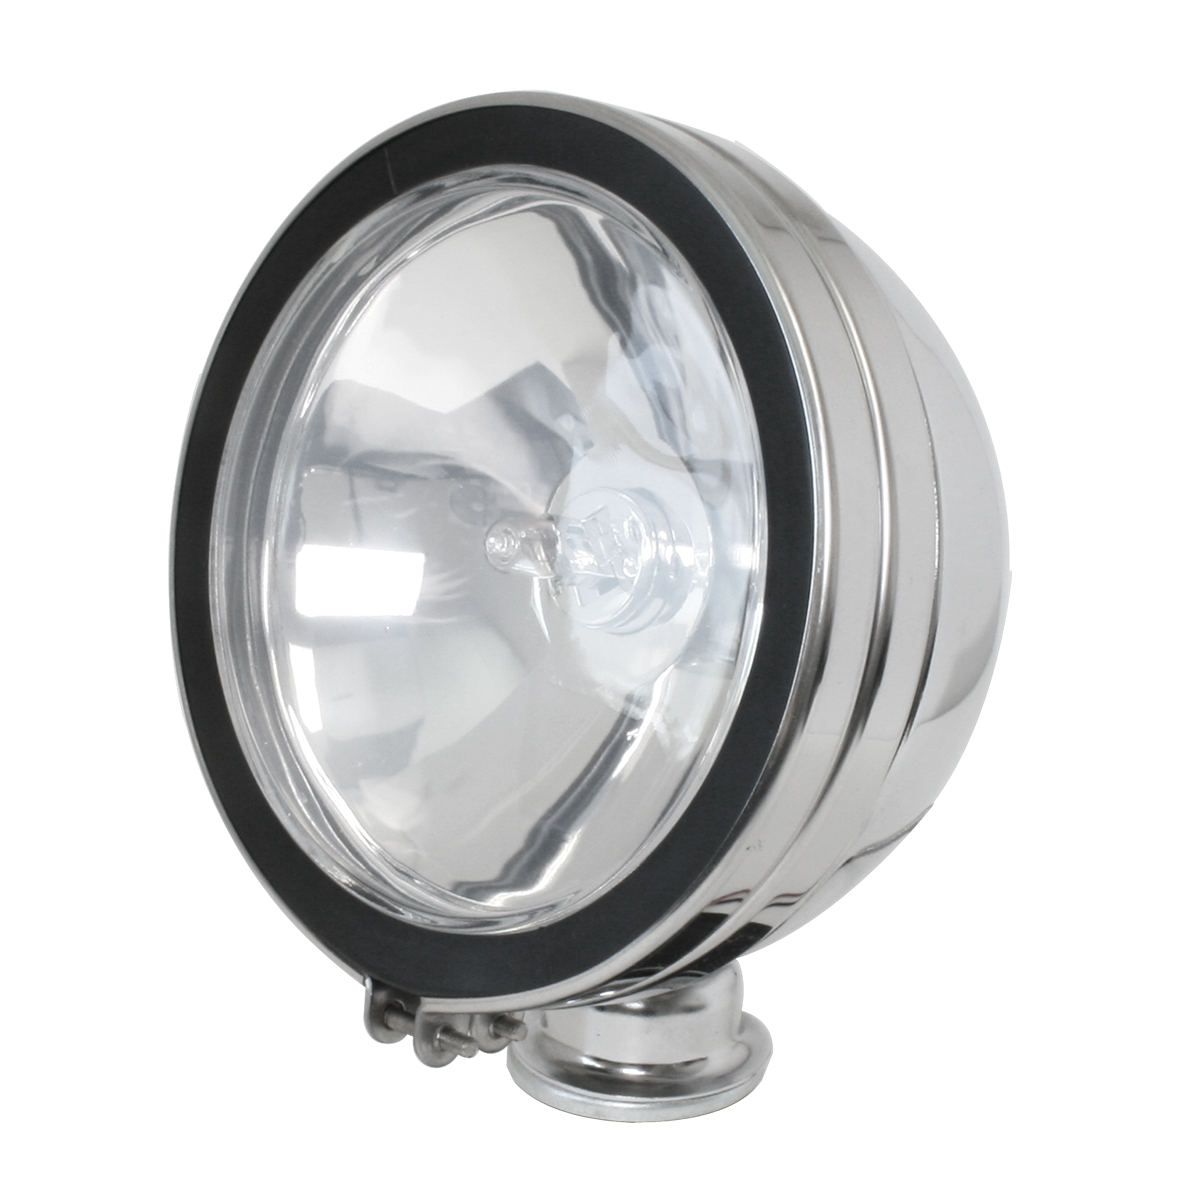 "#80625 6"" Chrome Plated Off-Road Light 100 Watts - Clear"